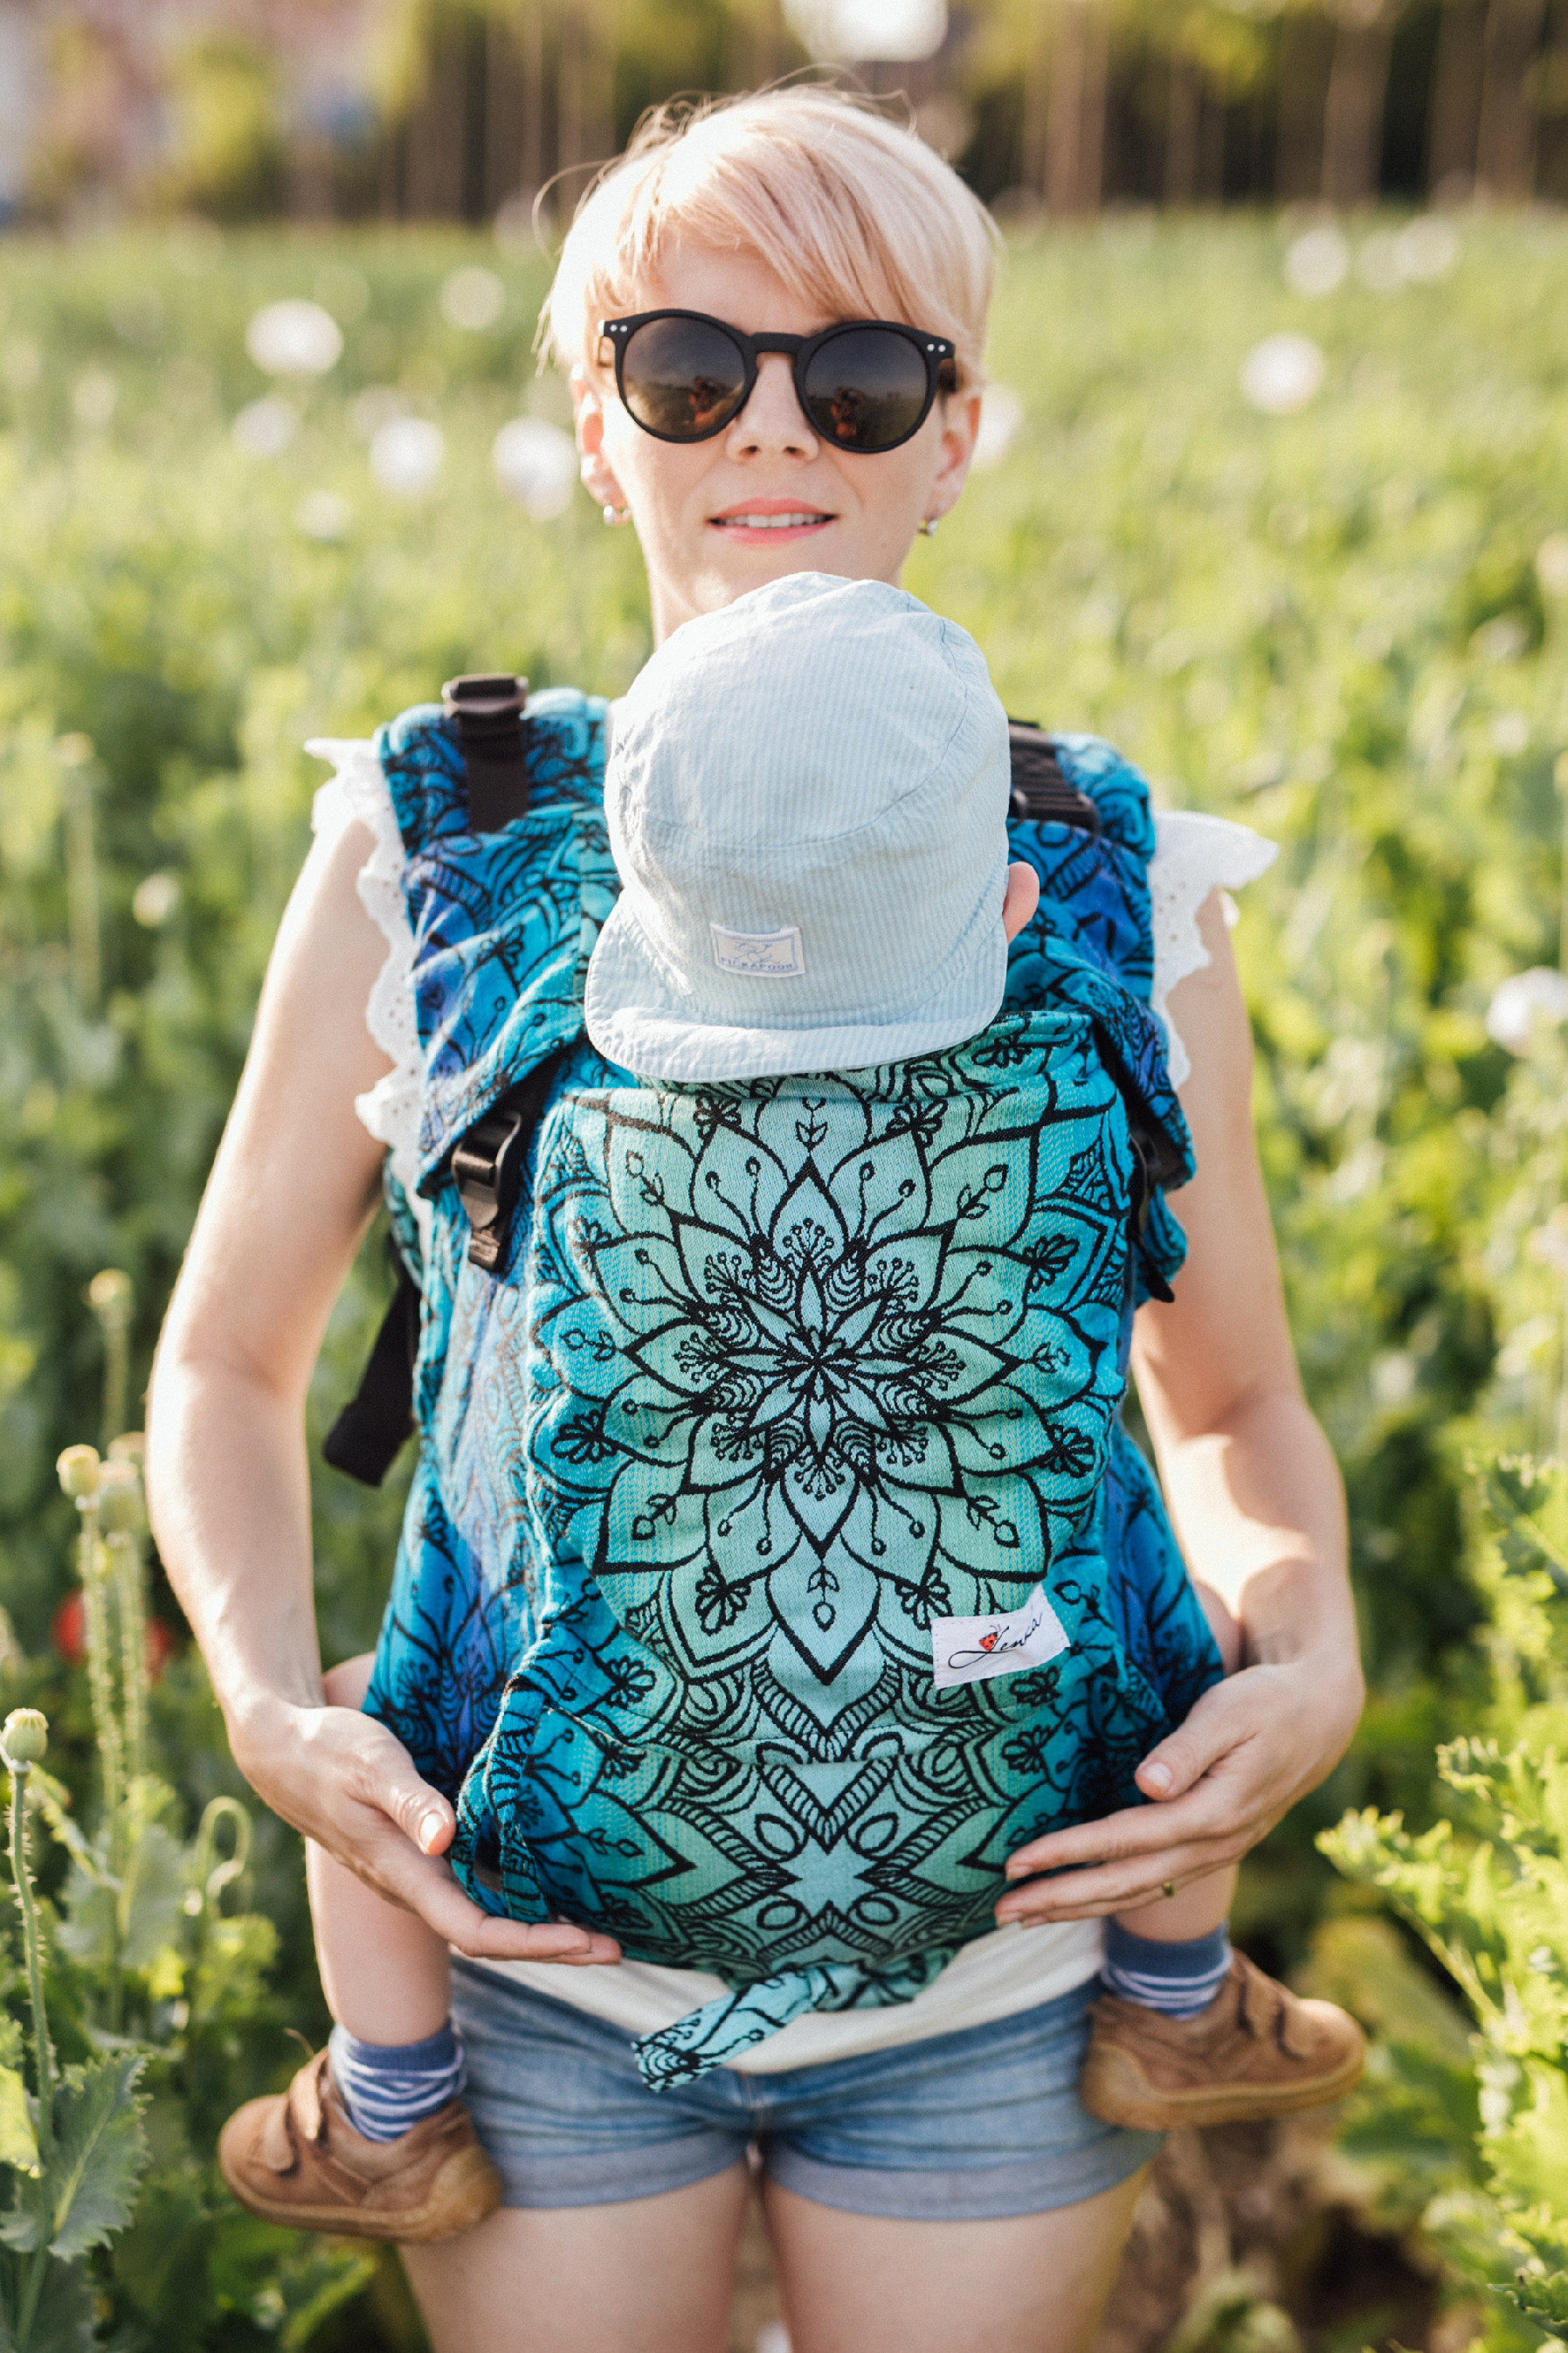 Baby Carrier - Be Lenka 4ever Mandala - Polar Day classic without the possibility of crossing